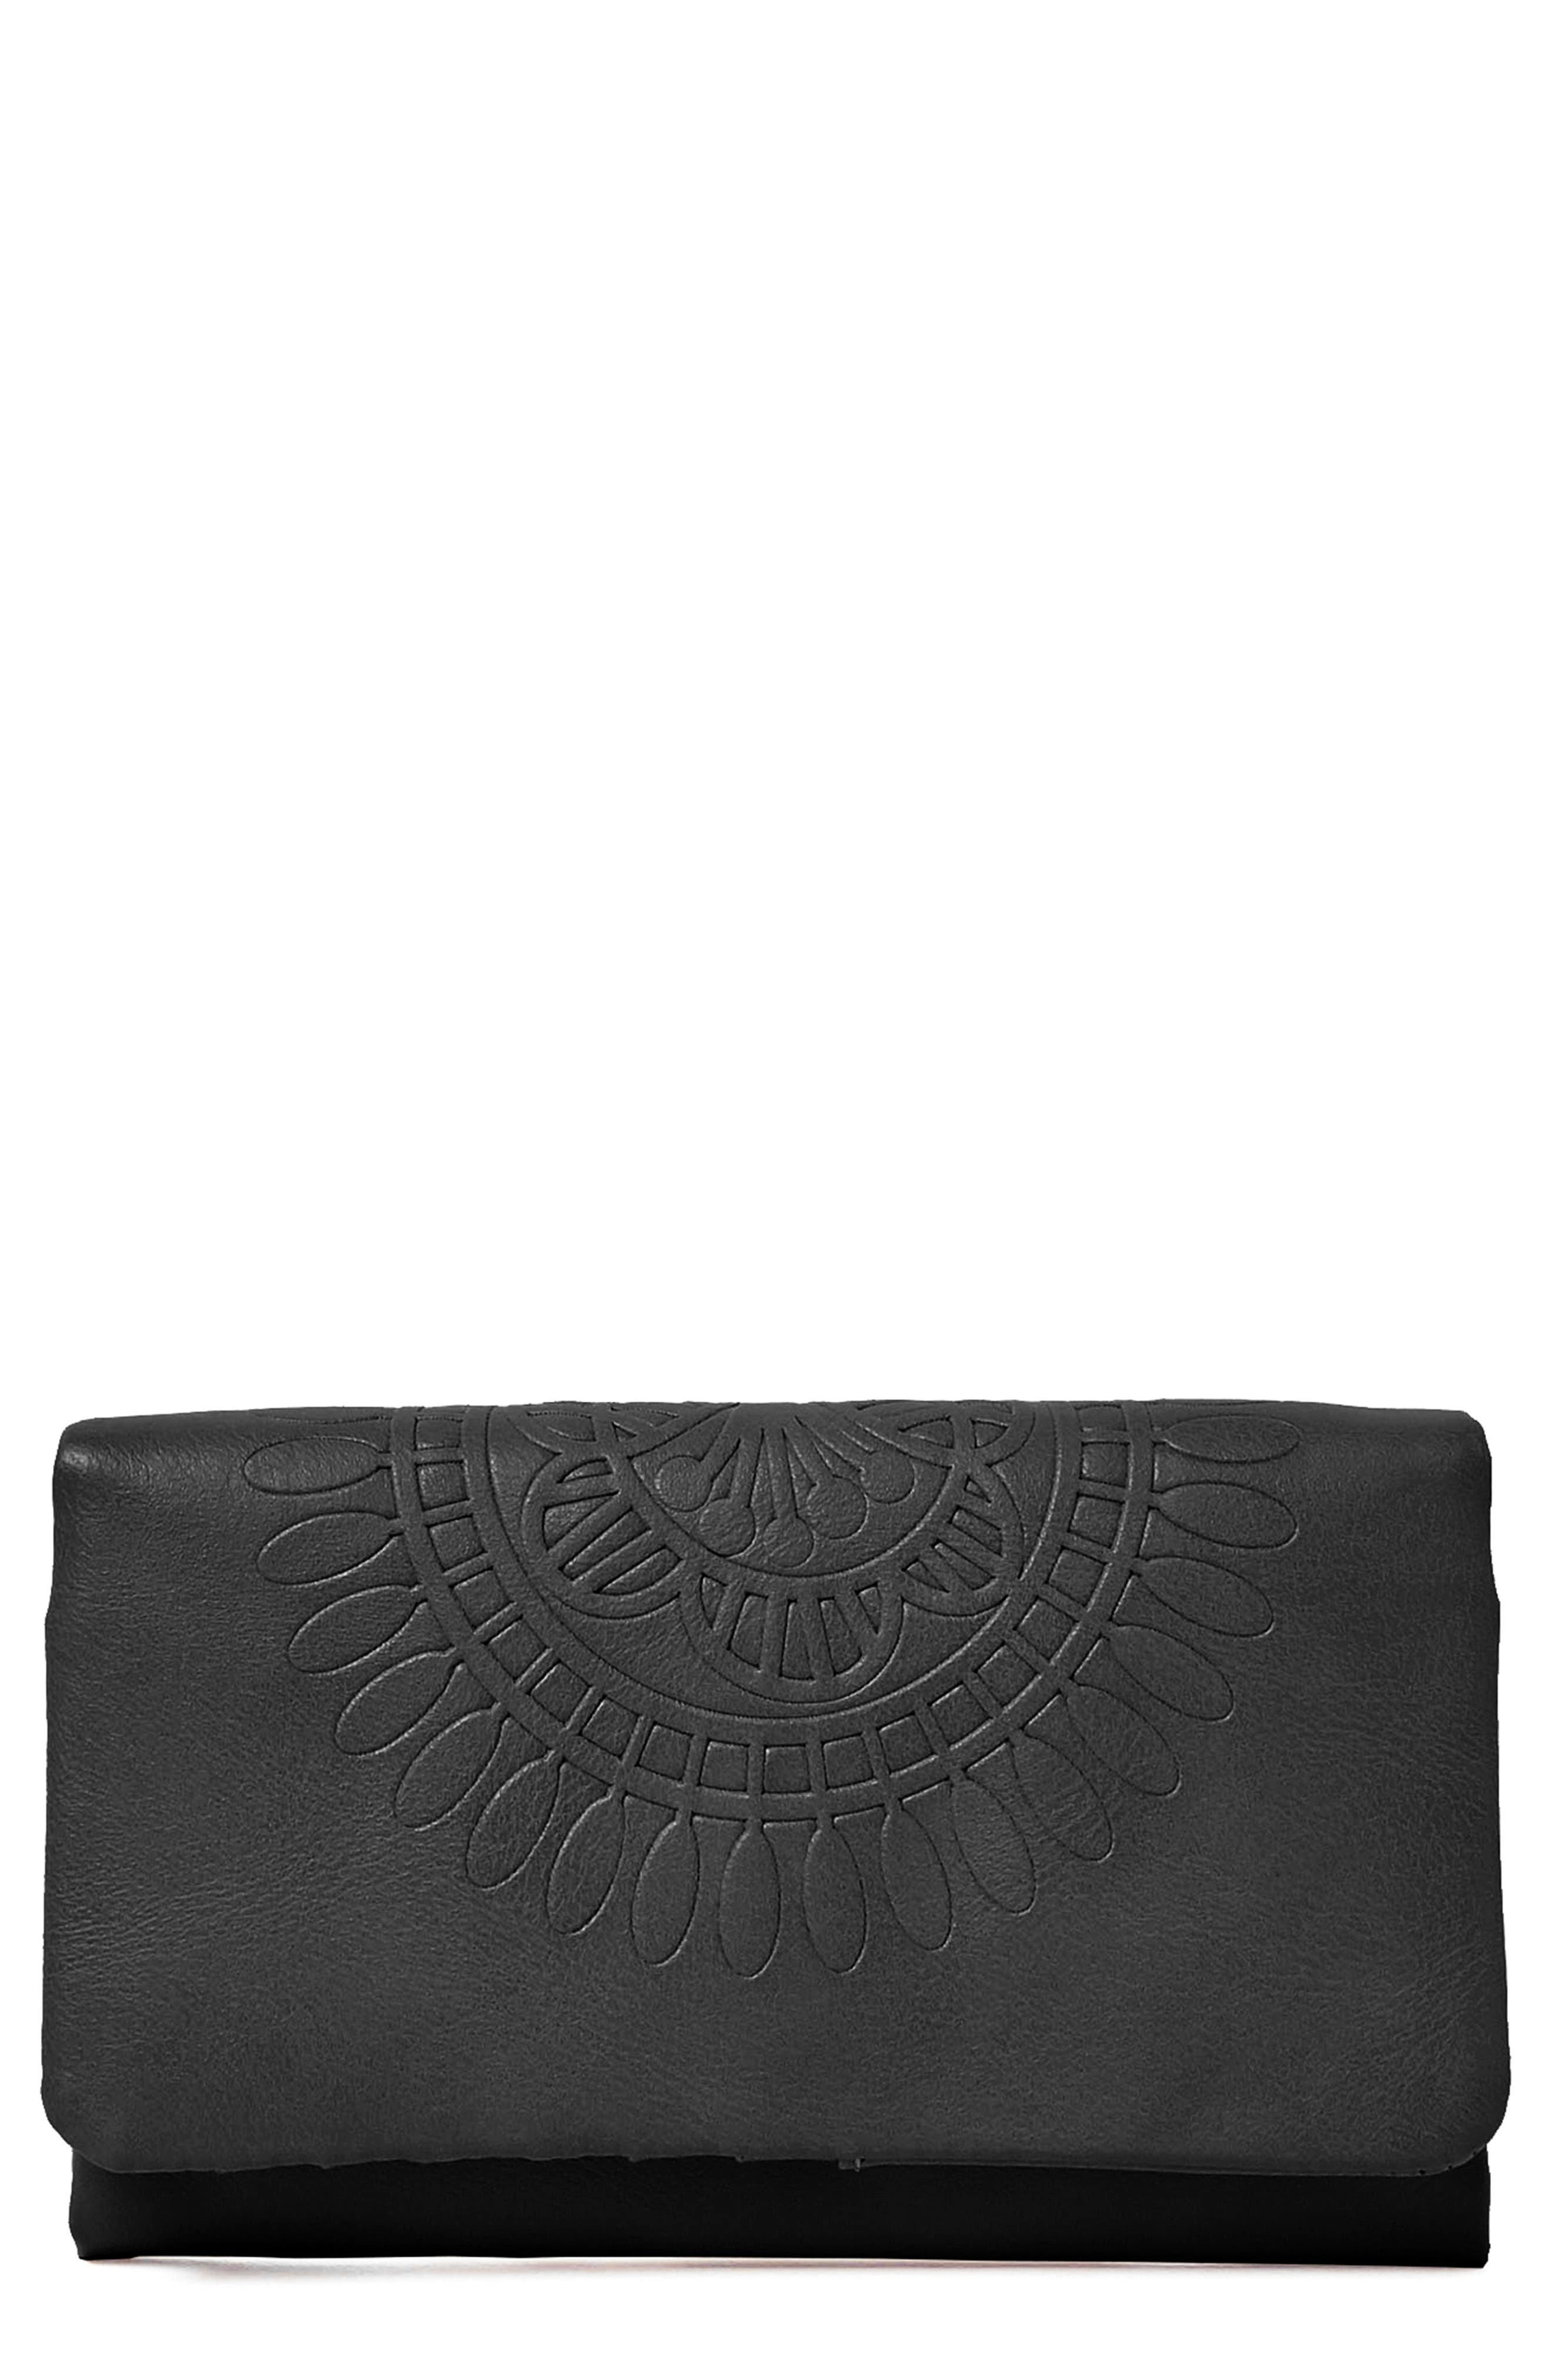 Flower Gypsy Vegan Leather Wallet,                         Main,                         color, 001